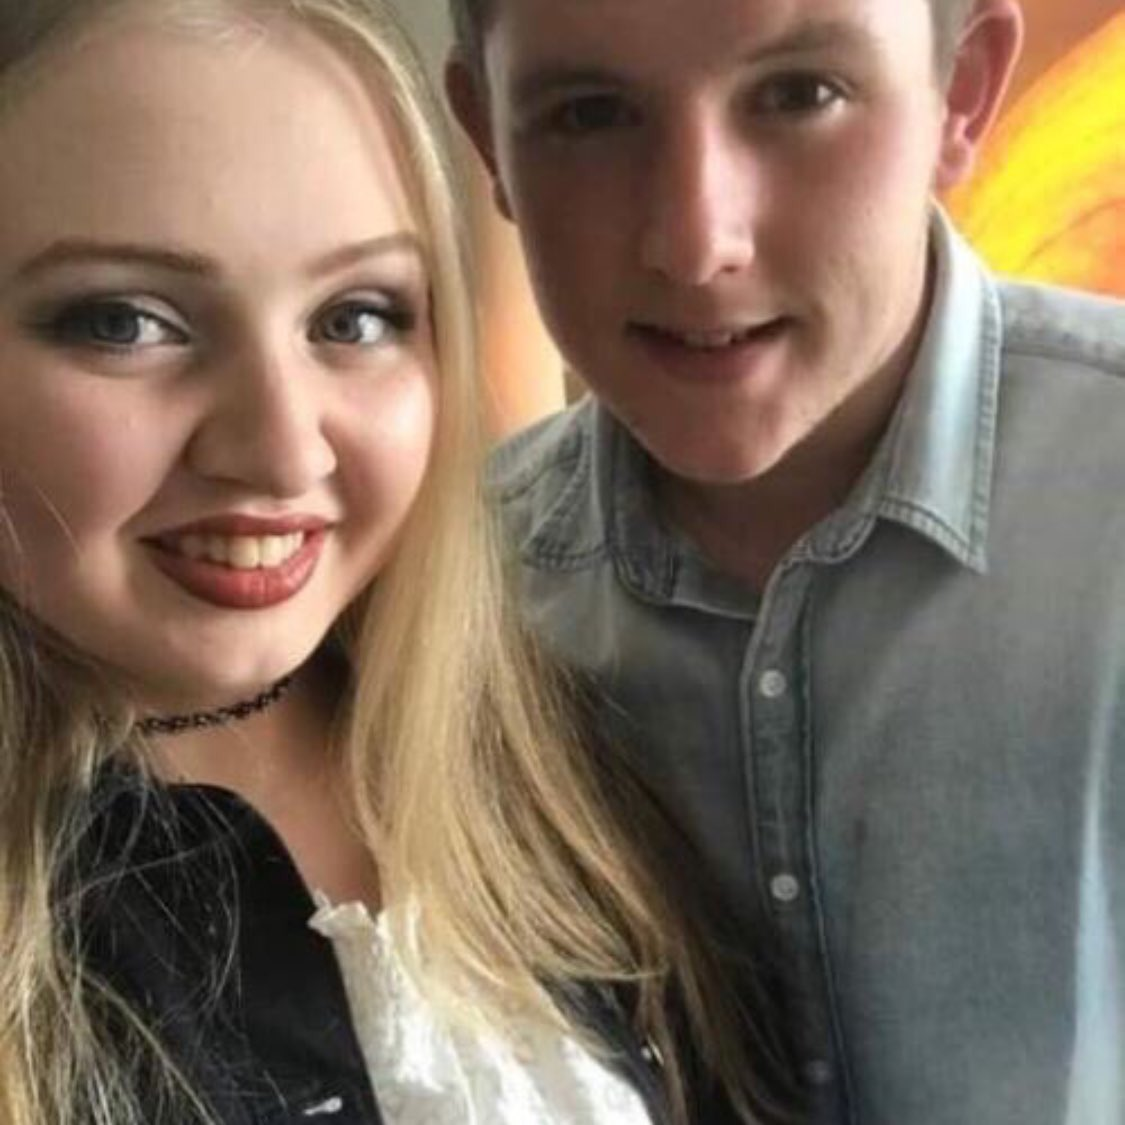 #RIP Liam Curry (19 years old) and Chloe Rutherford (17 years old). Both murdered by a coward in #Manchester<br>http://pic.twitter.com/AyX4ZEHWOQ